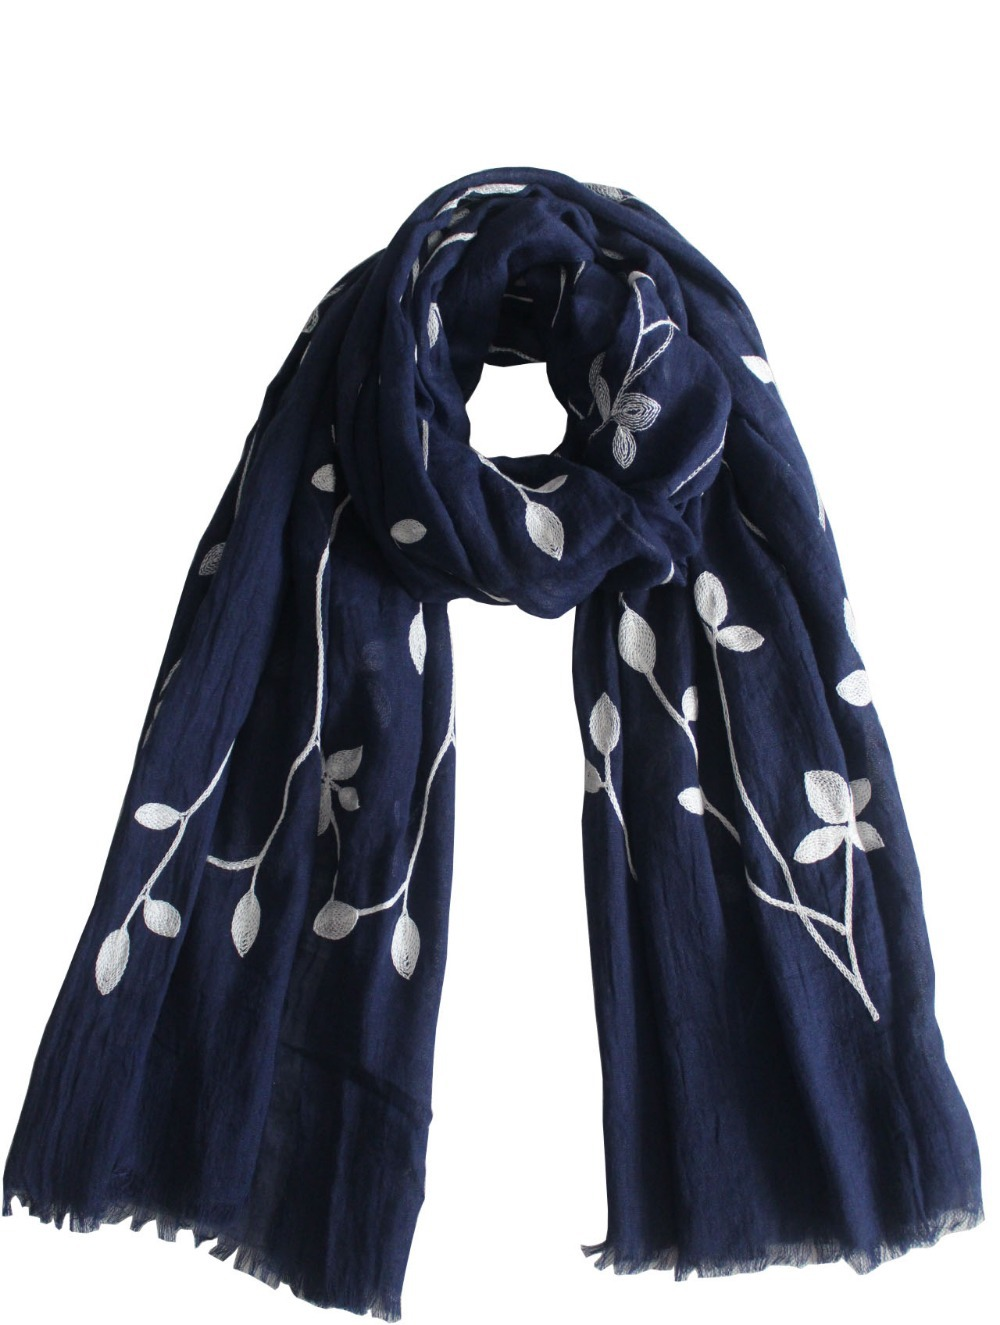 2015 New Fashionable Women Cotton Embroidery Floral Pattern Long Scarfs Shawls For Women Ladies(China (Mainland))